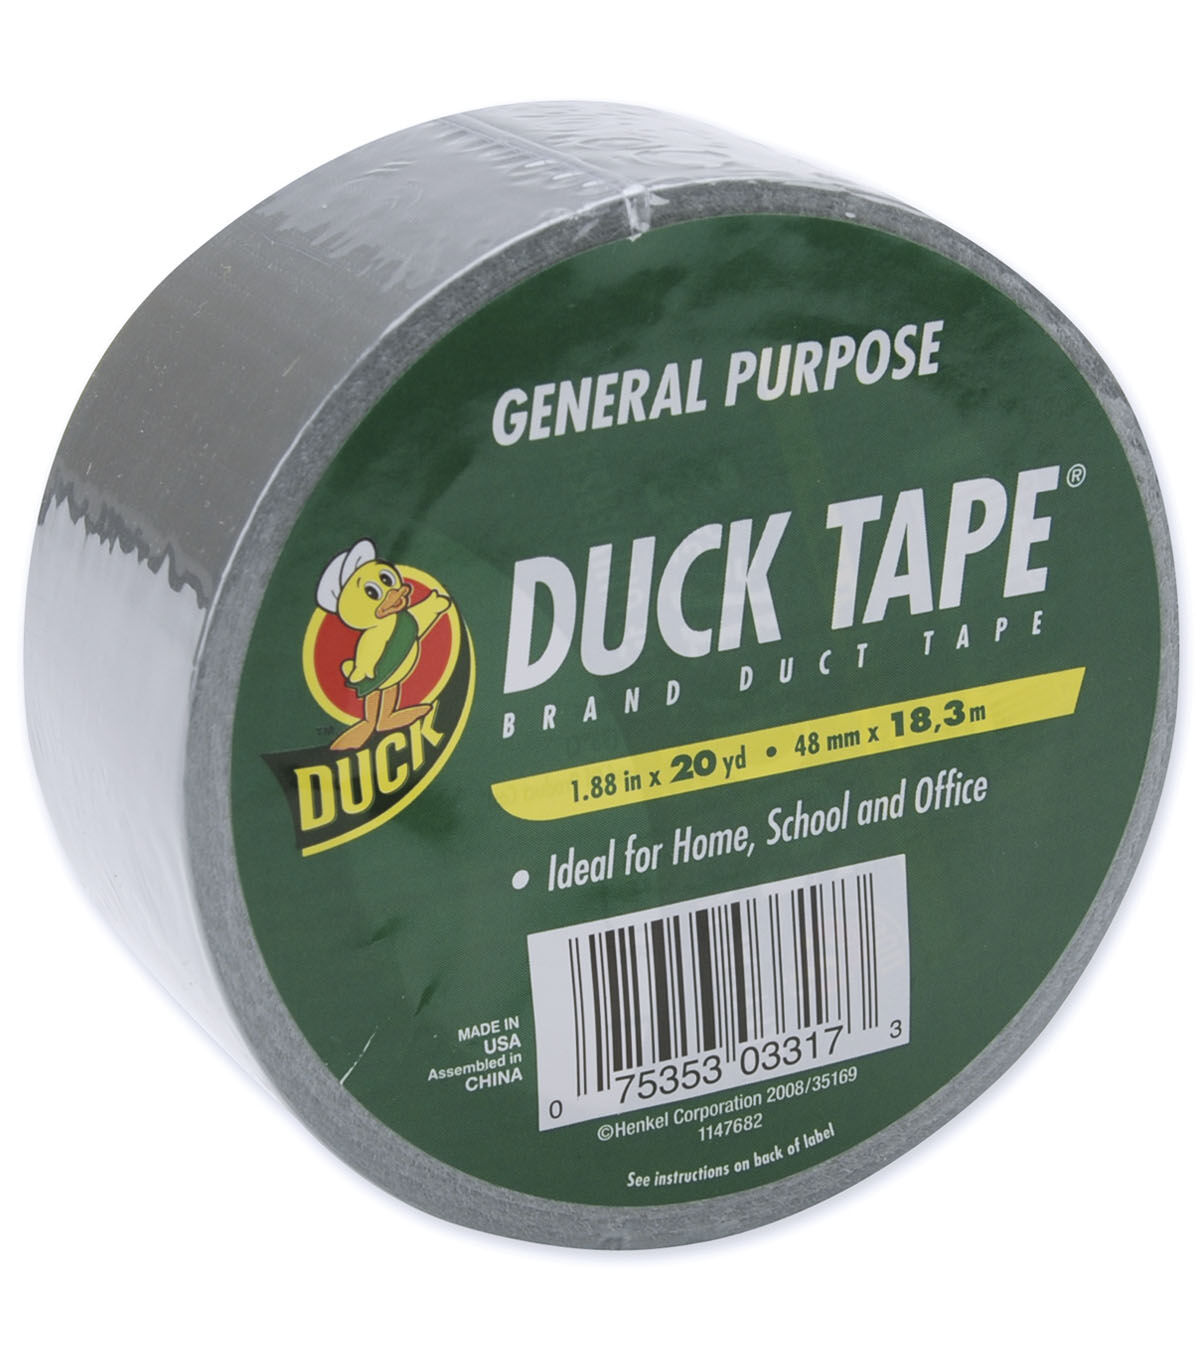 Adhesives, Sealants & Tapes Duck General Purpose Waterproof Self-adhesive Colored Duct Tape Silver Coin Easy To Lubricate Glues, Epoxies & Cements